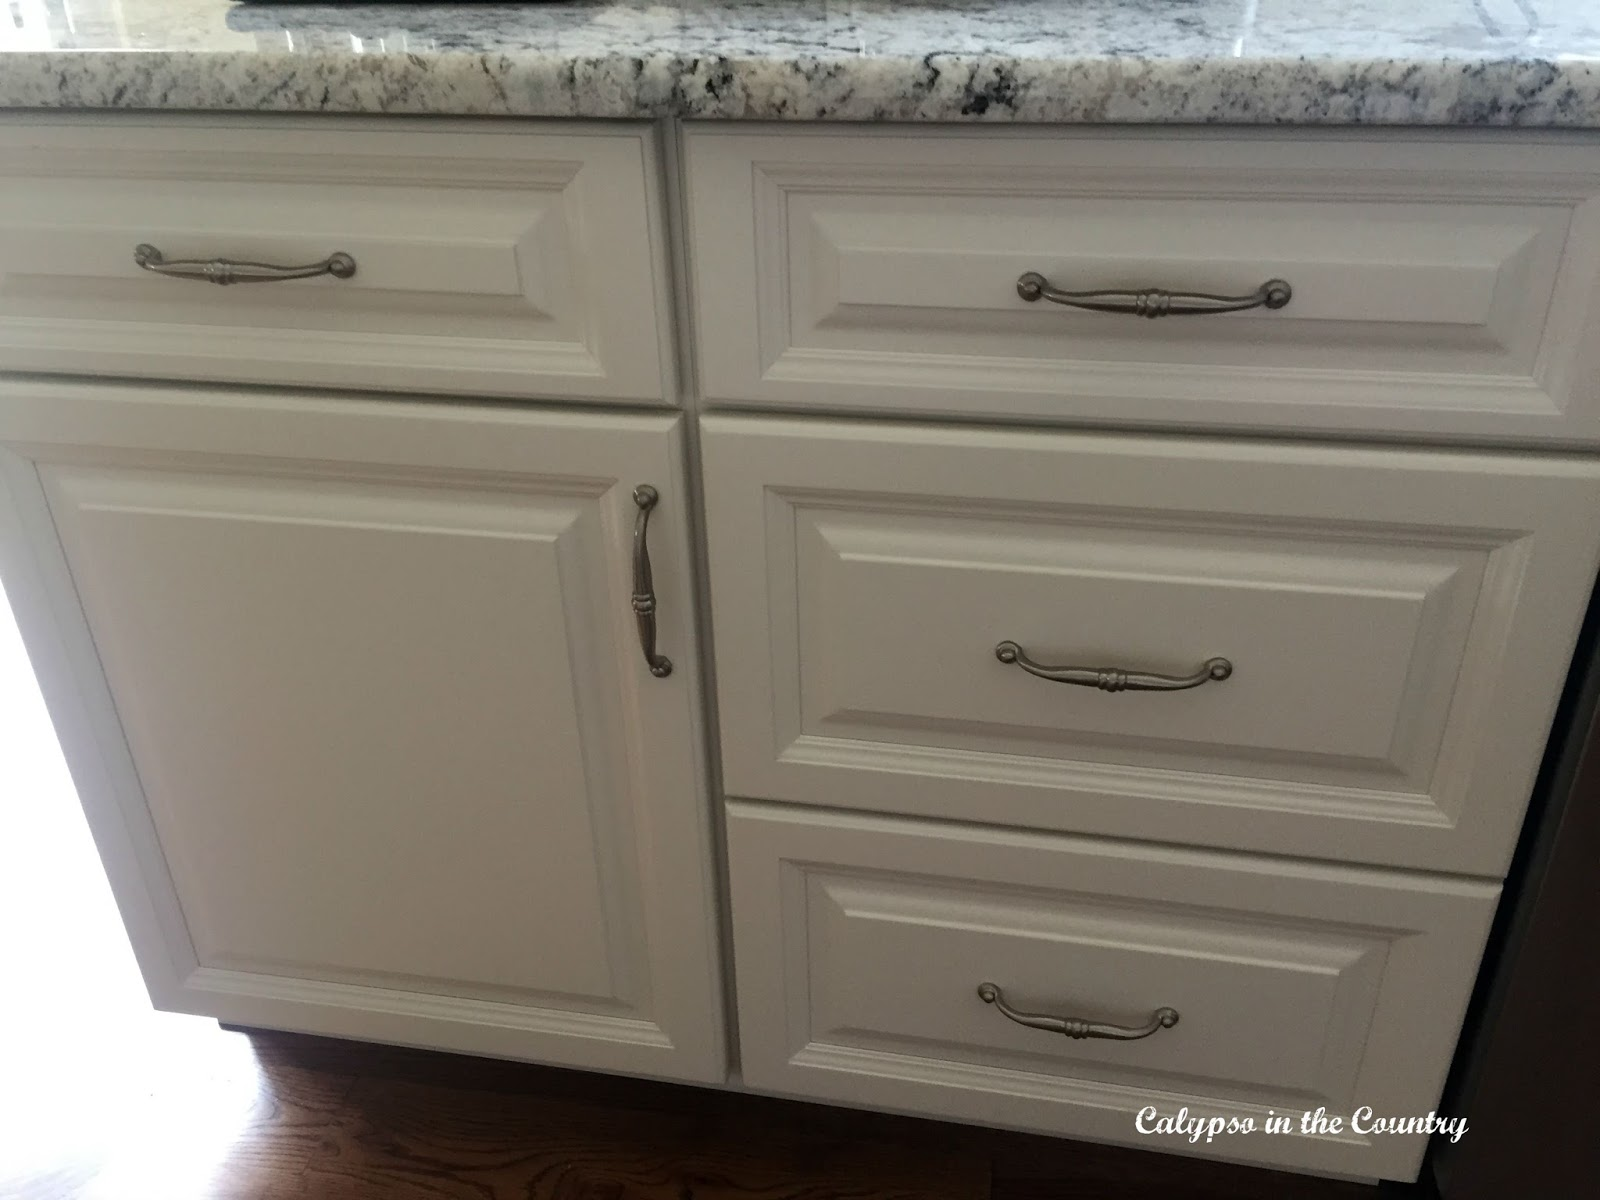 How To Install Kitchen Cabinet Hardware Handles For White Bathroom Cabinets Cabinet Pulls These